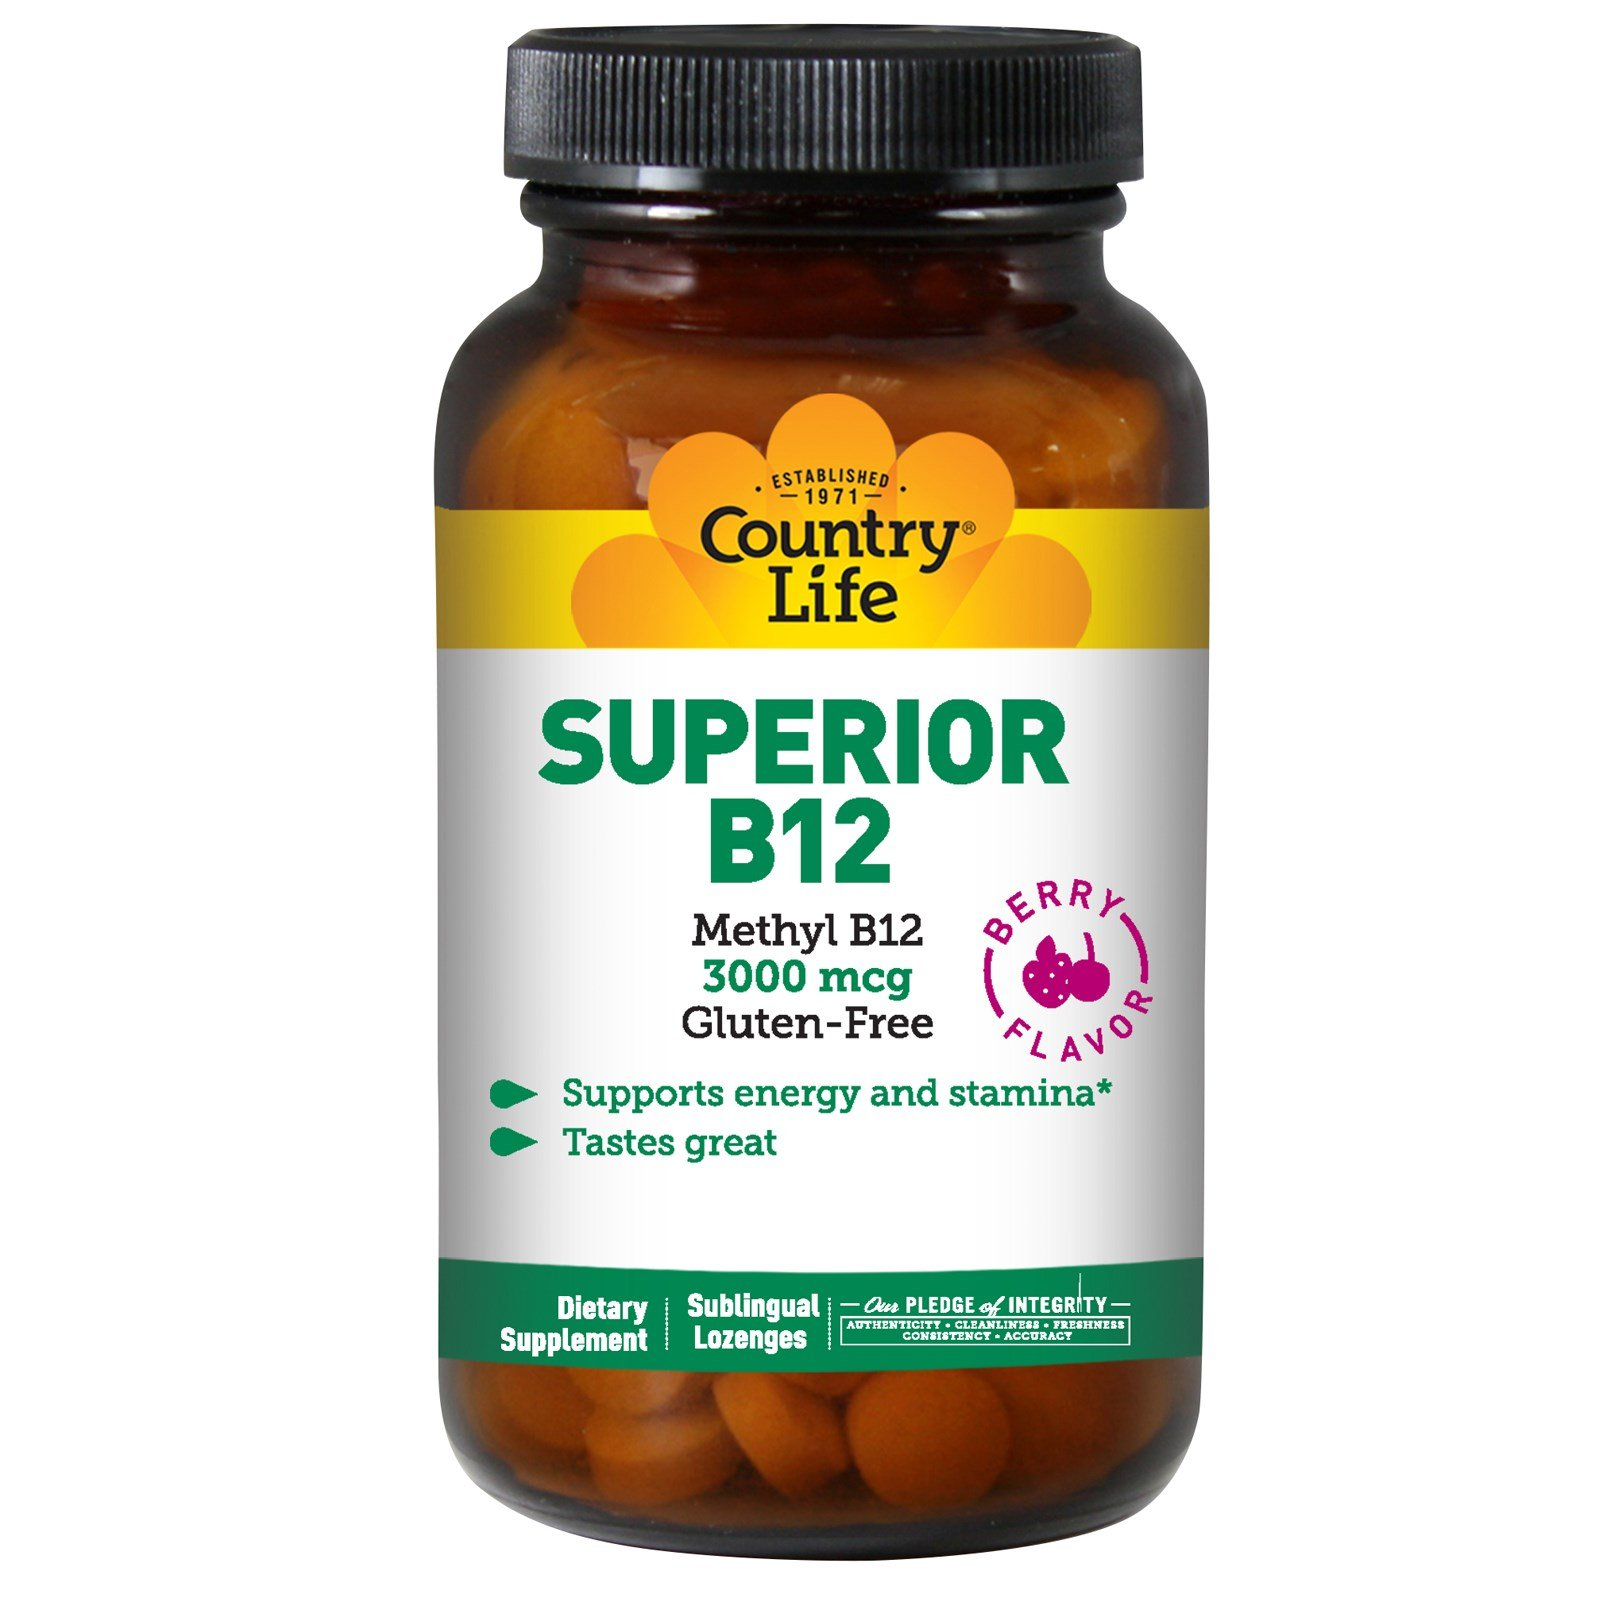 Country Life - Methyl B-12, Berry Flavored, 3000 mcg - 120 Lozenges